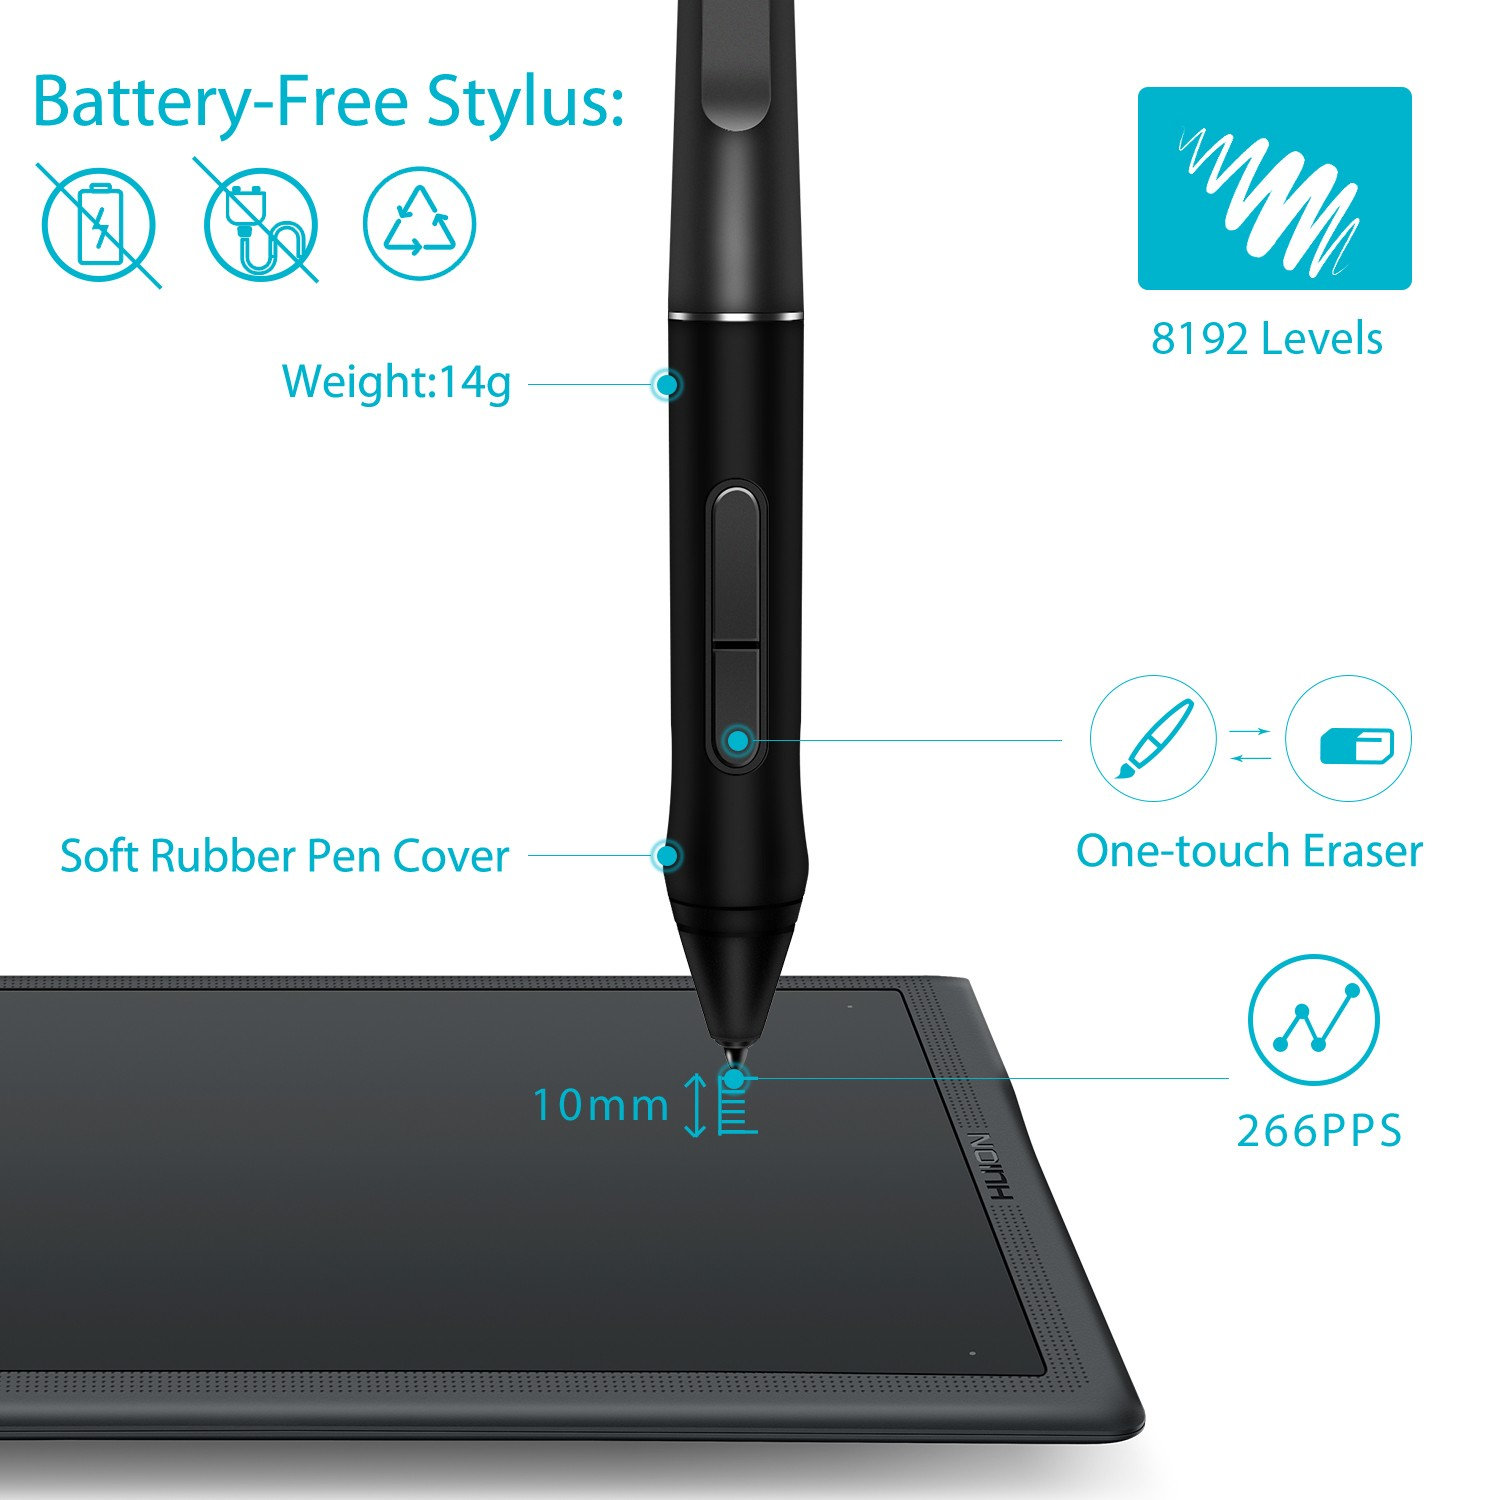 Huion Inspiroy Q11K V2 Wireless Graphic Drawing Tablet | Huion Australia